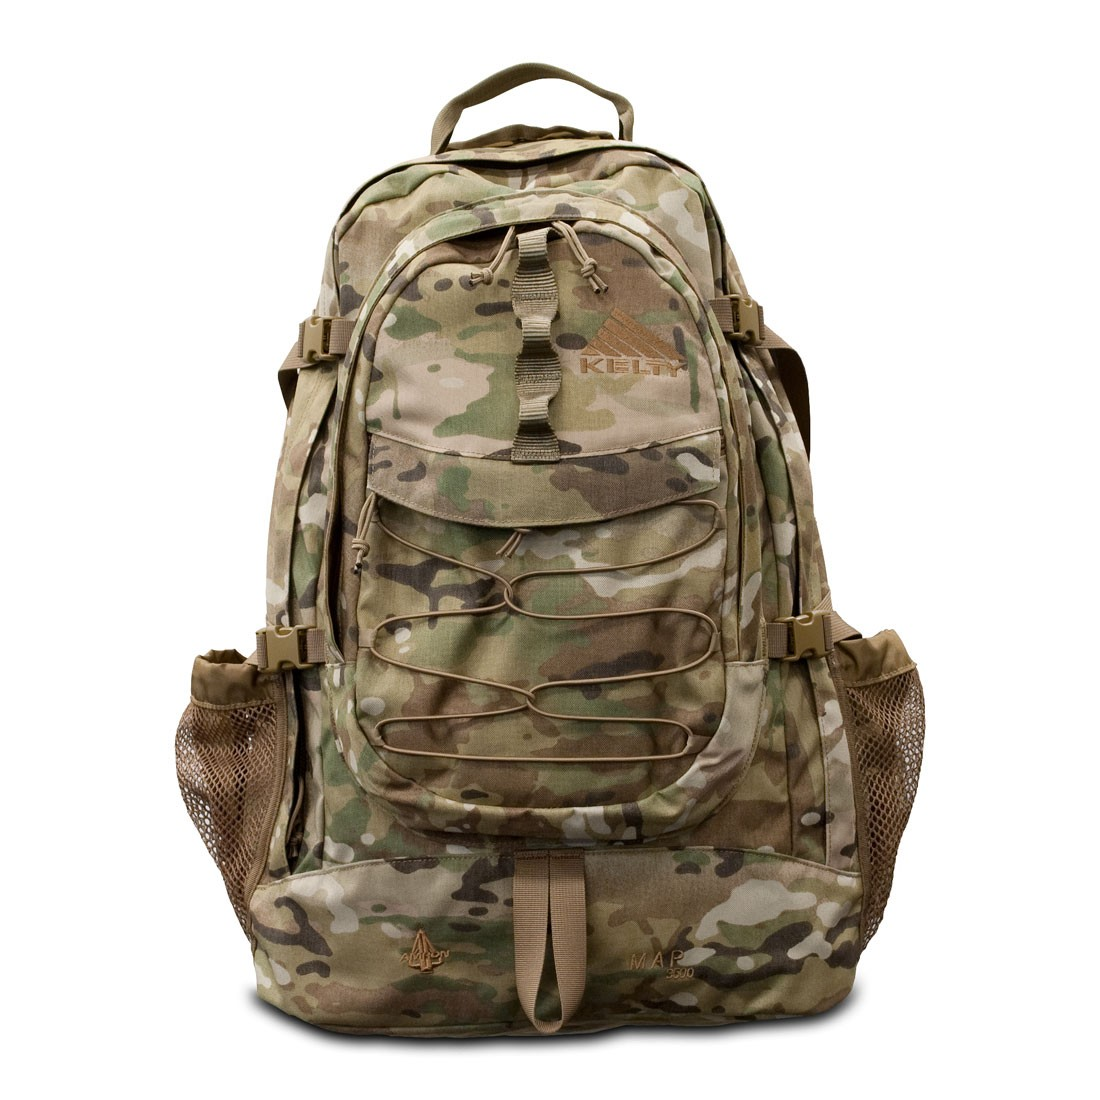 Kelty MAP 3500 3 Day Assault Pack - Multicam